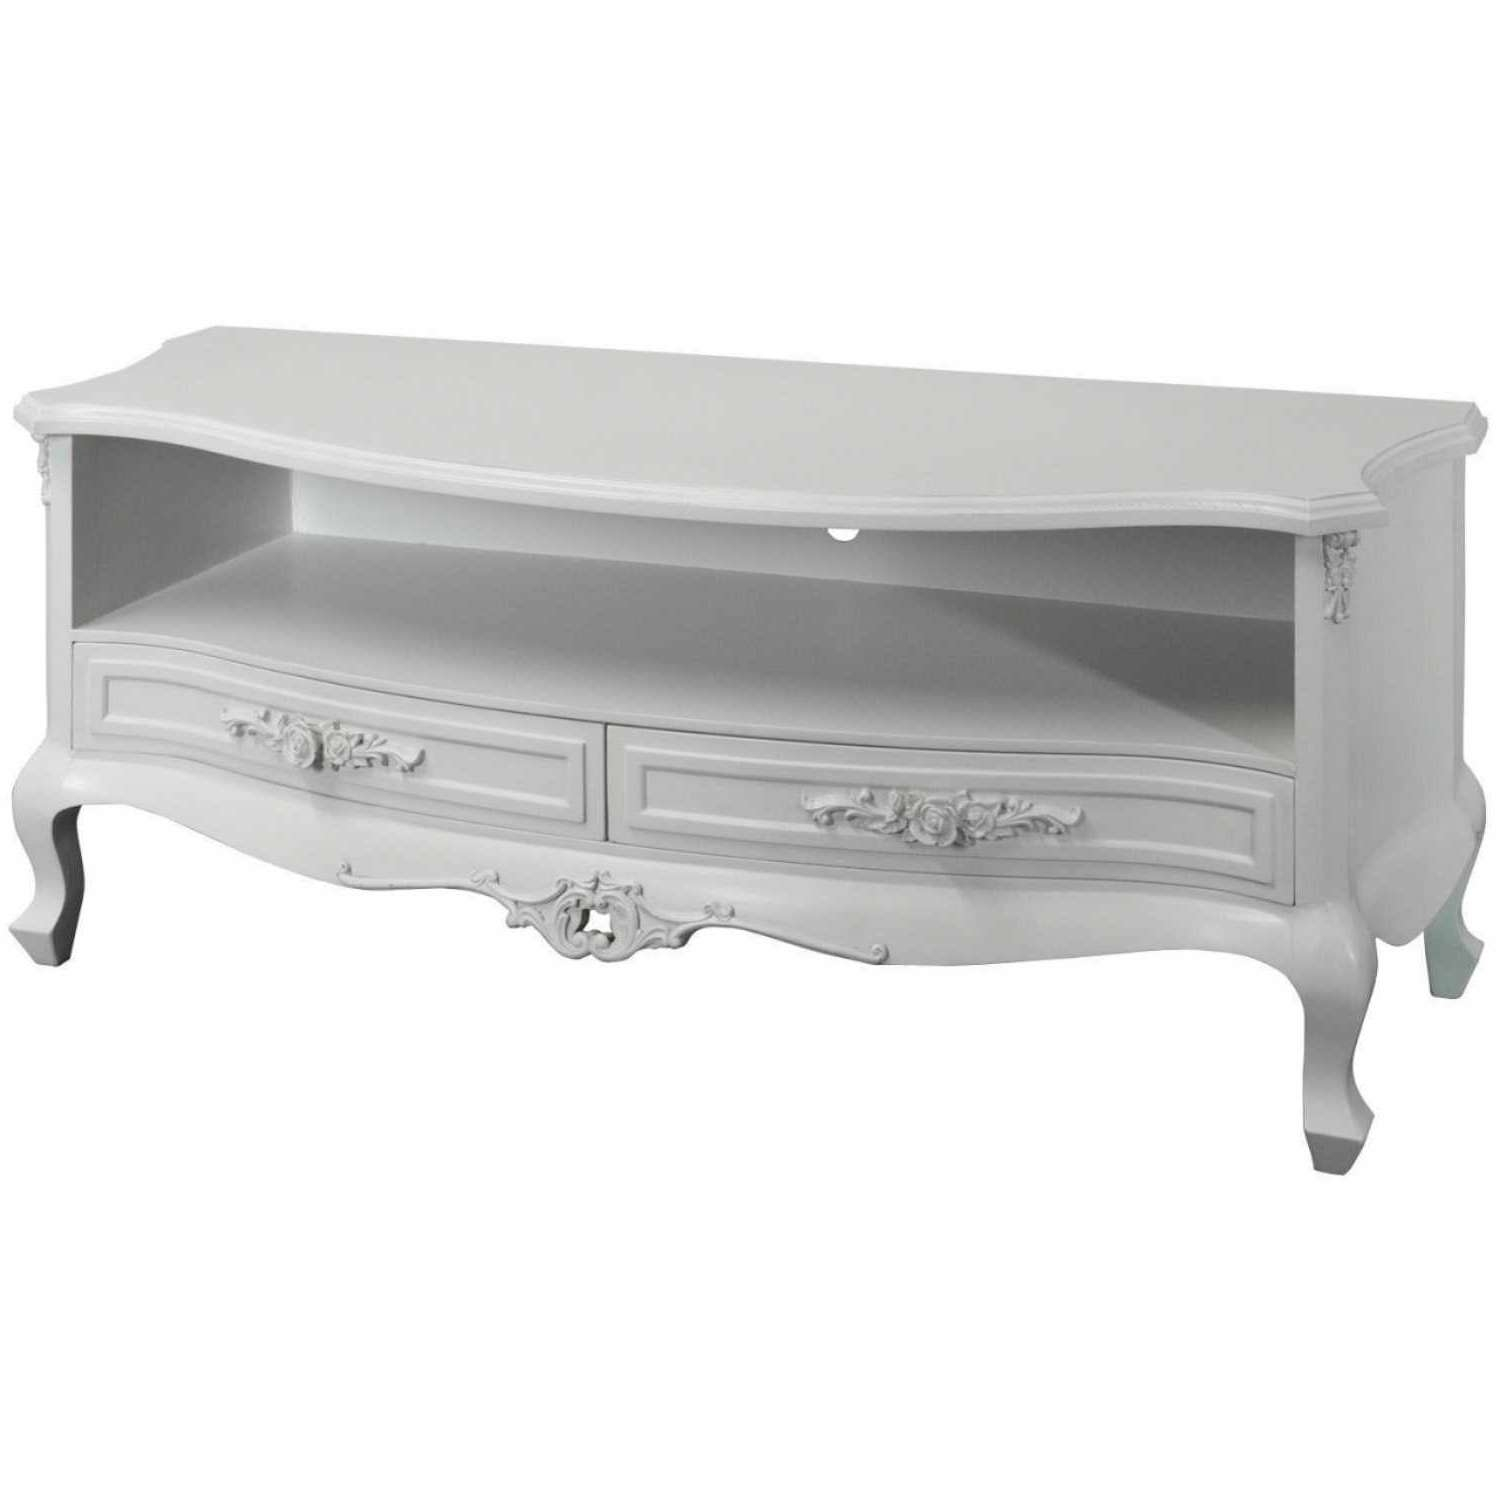 Rose Shabby Chic White Painted Low Widescreen Tv Stand Cabinet Regarding Shabby Chic Tv Cabinets (View 11 of 20)